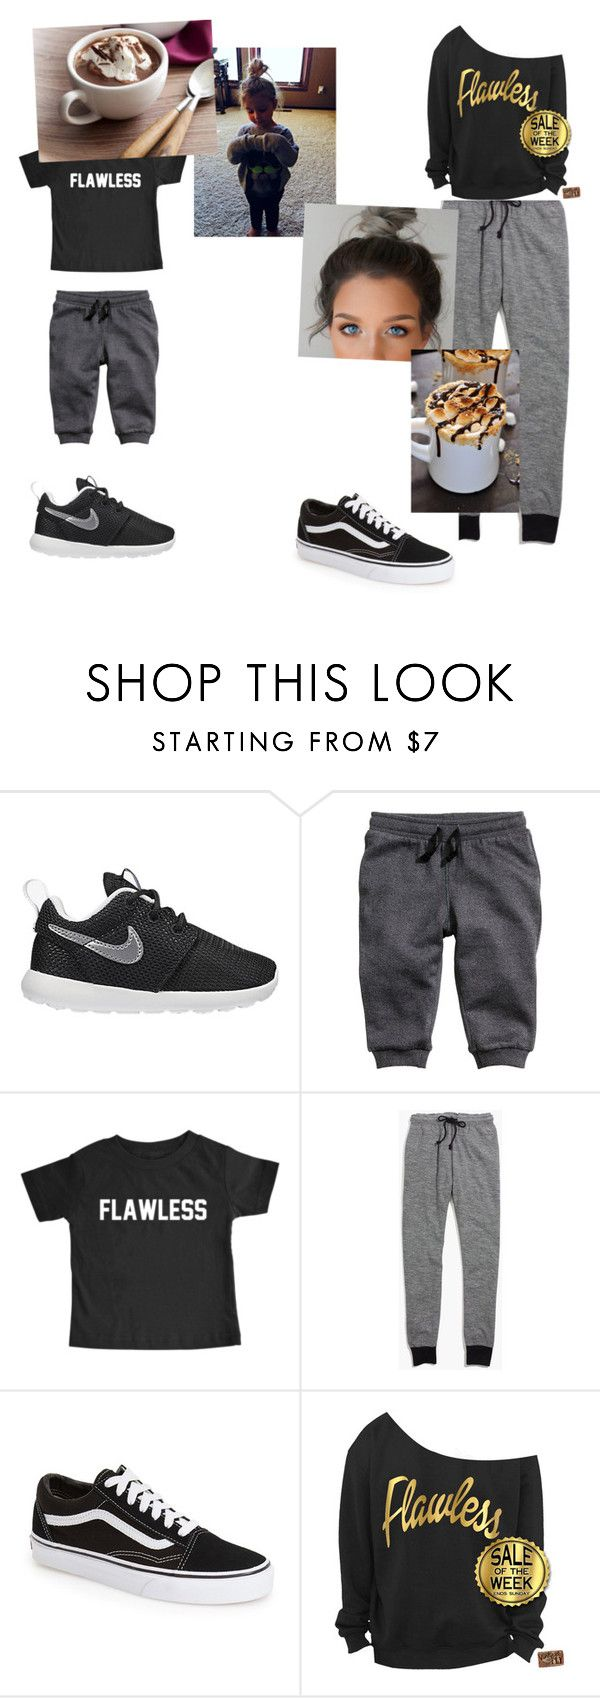 """Chill in' with the baby sis/ magcon story"" by mendesmusicforever ❤ liked on Polyvore featuring NIKE, H&M, Madewell and Vans"